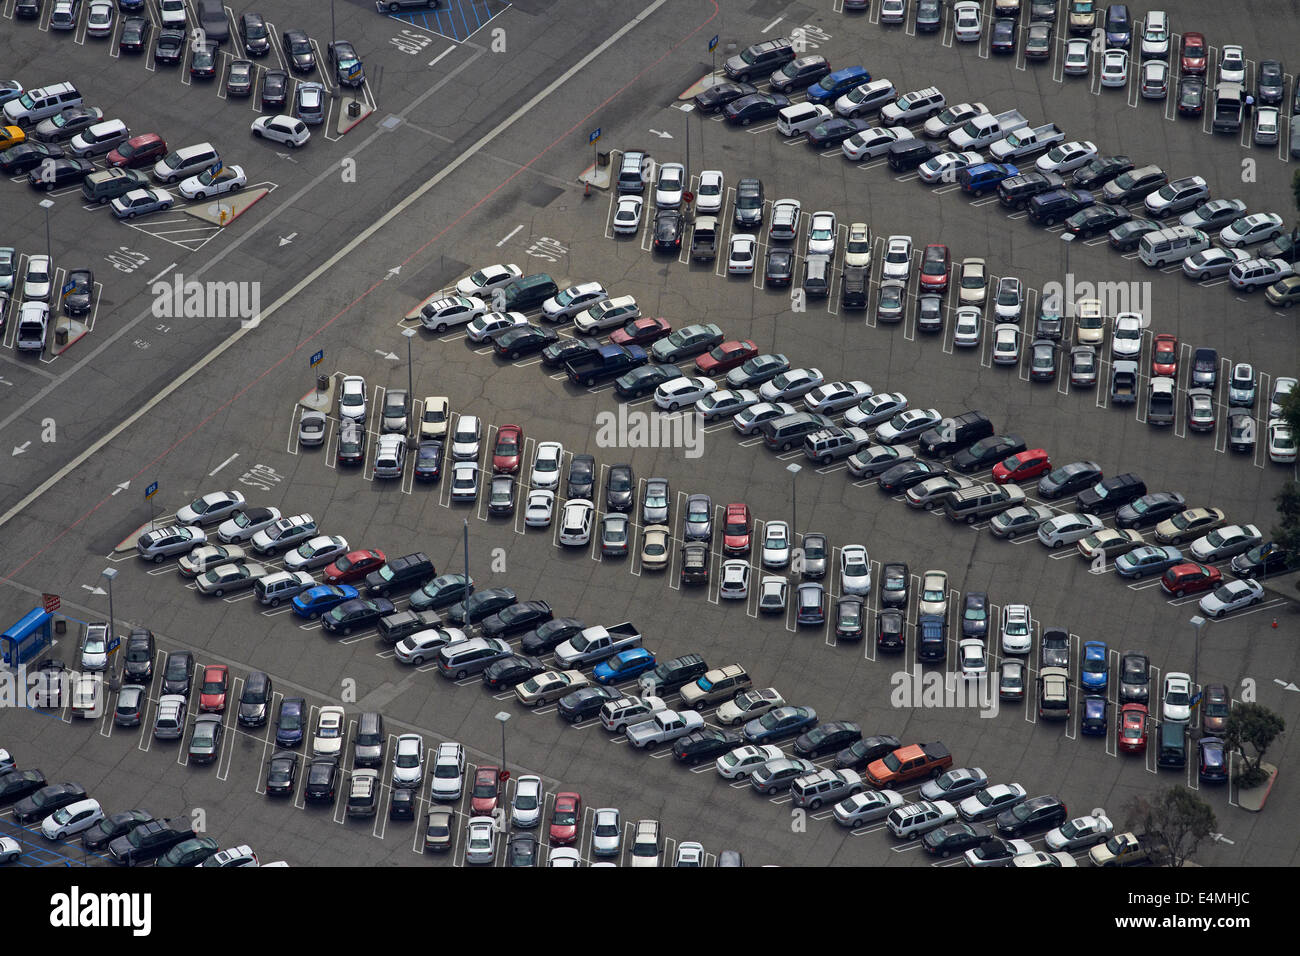 Car park, Los Angeles International Airport (LAX), Los Angeles, California, USA - aerial - Stock Image